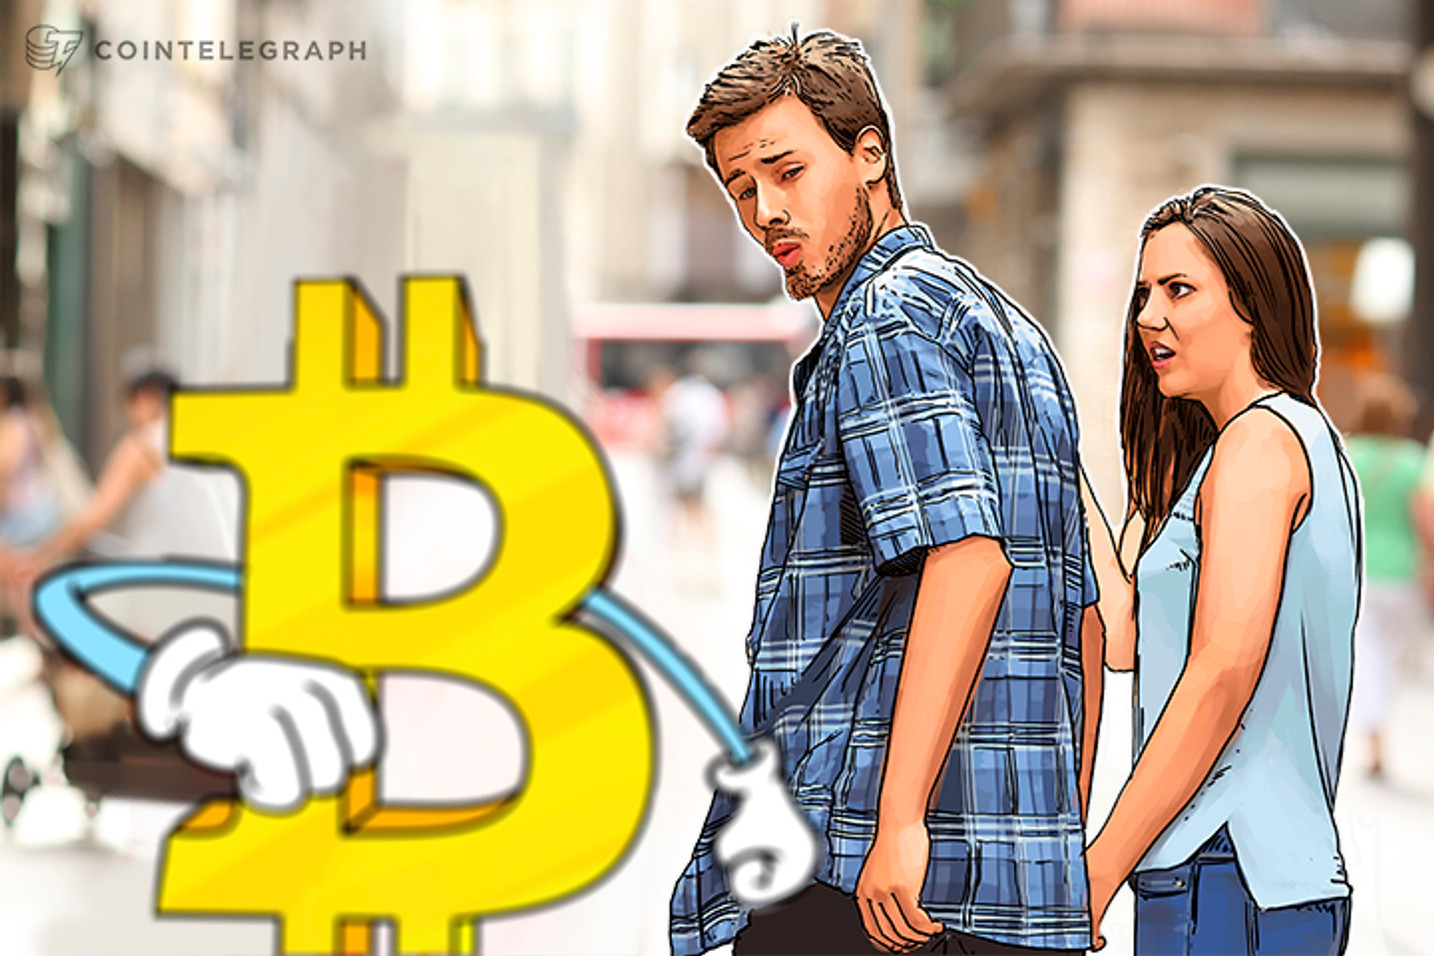 Record-breaking 2017 Brought Bitcoin, Altcoins Drastically Increased Mainstream Acceptance